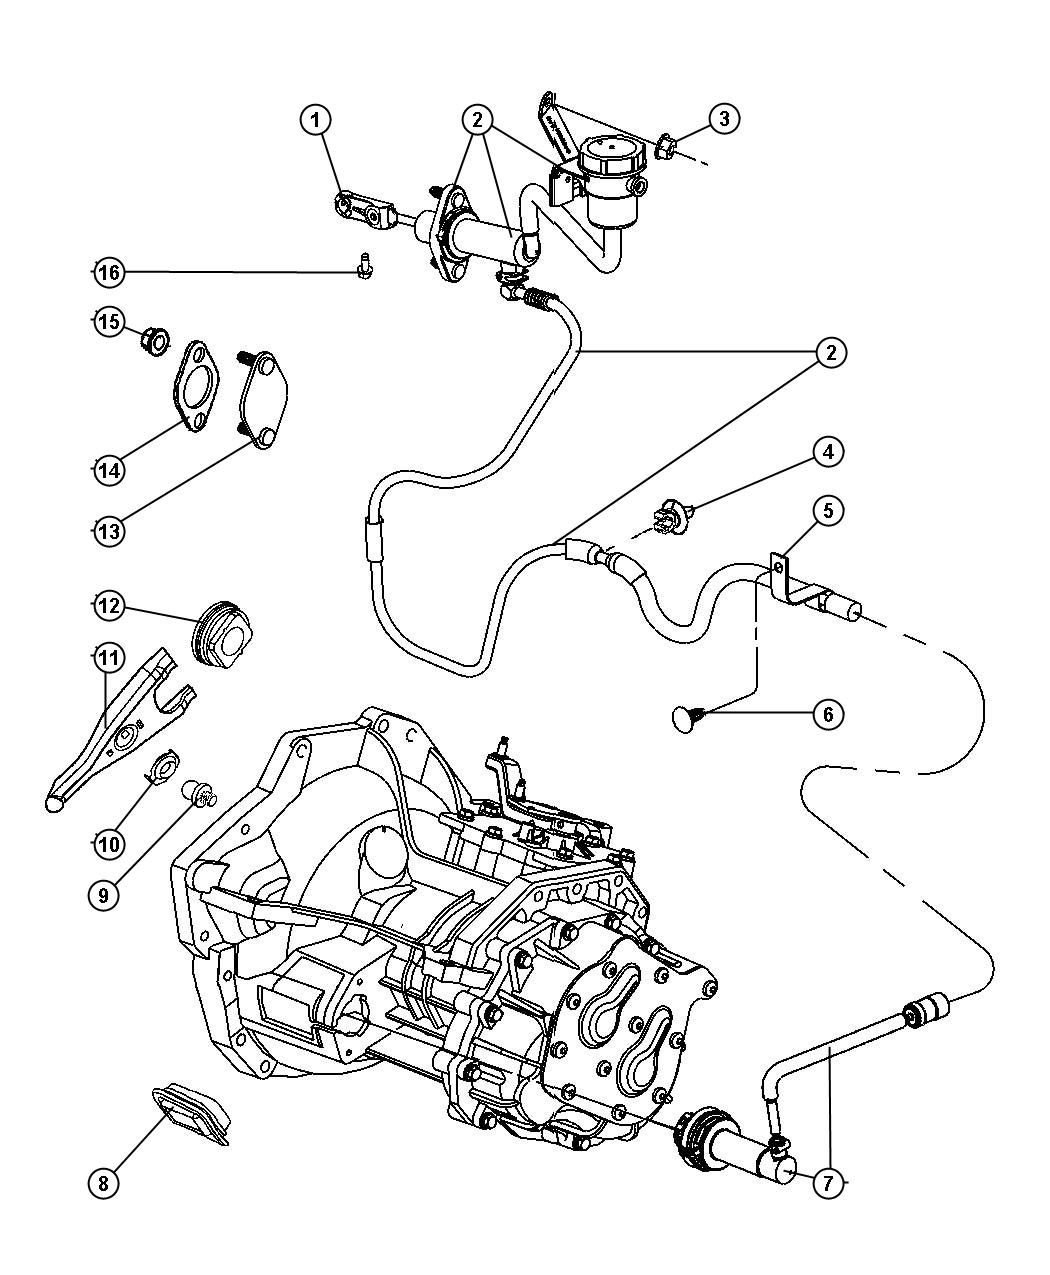 diagram dodge neon manual  diagram  free engine image for